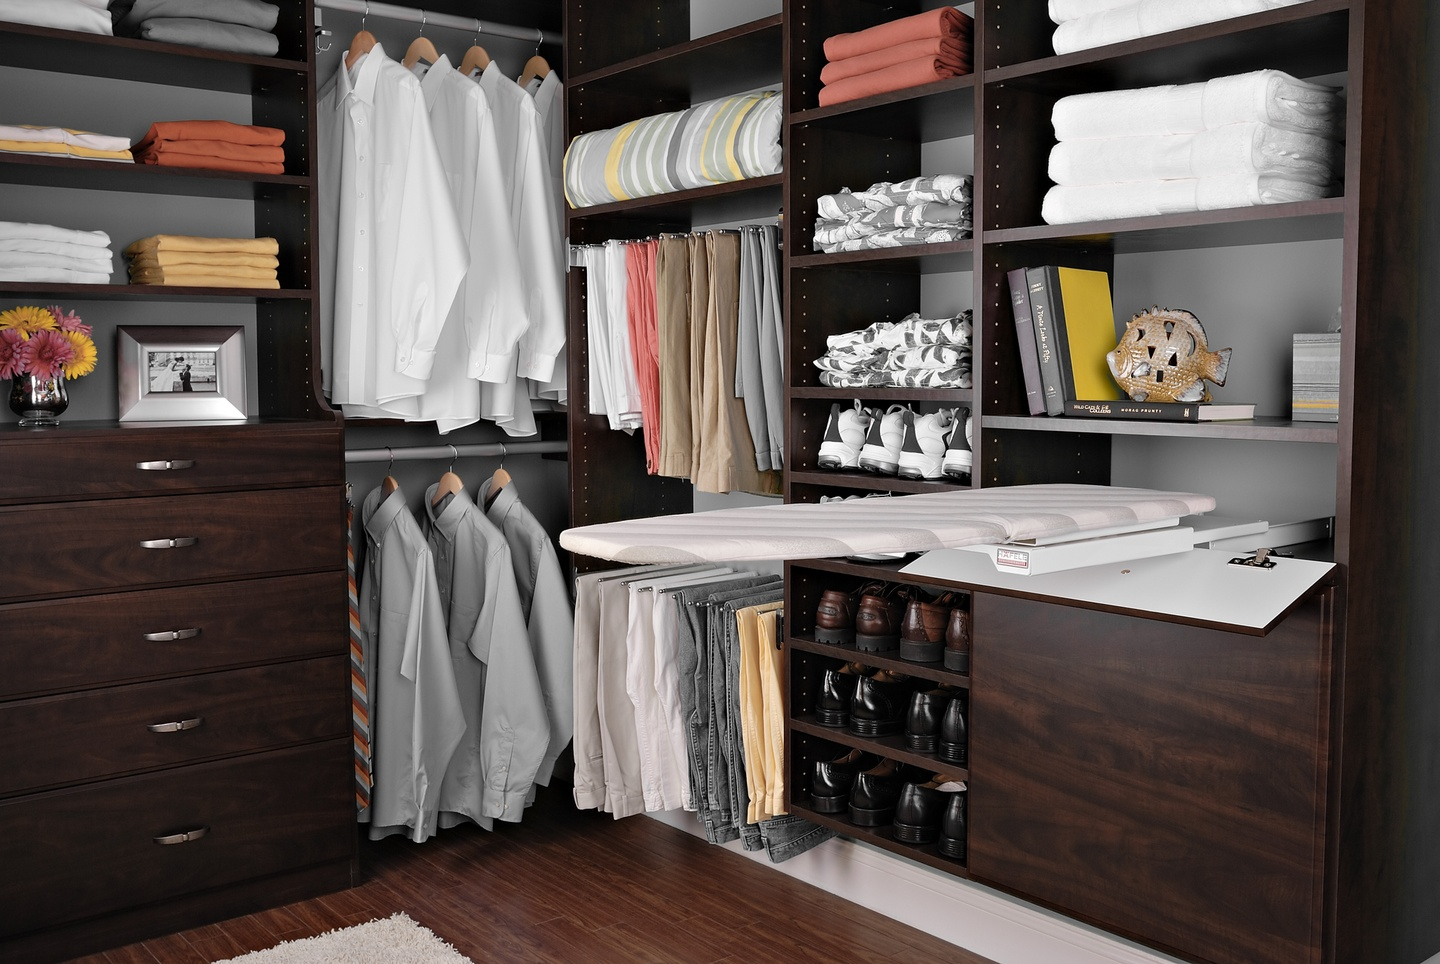 relatively custom closet diy @qt44 – roccommunity